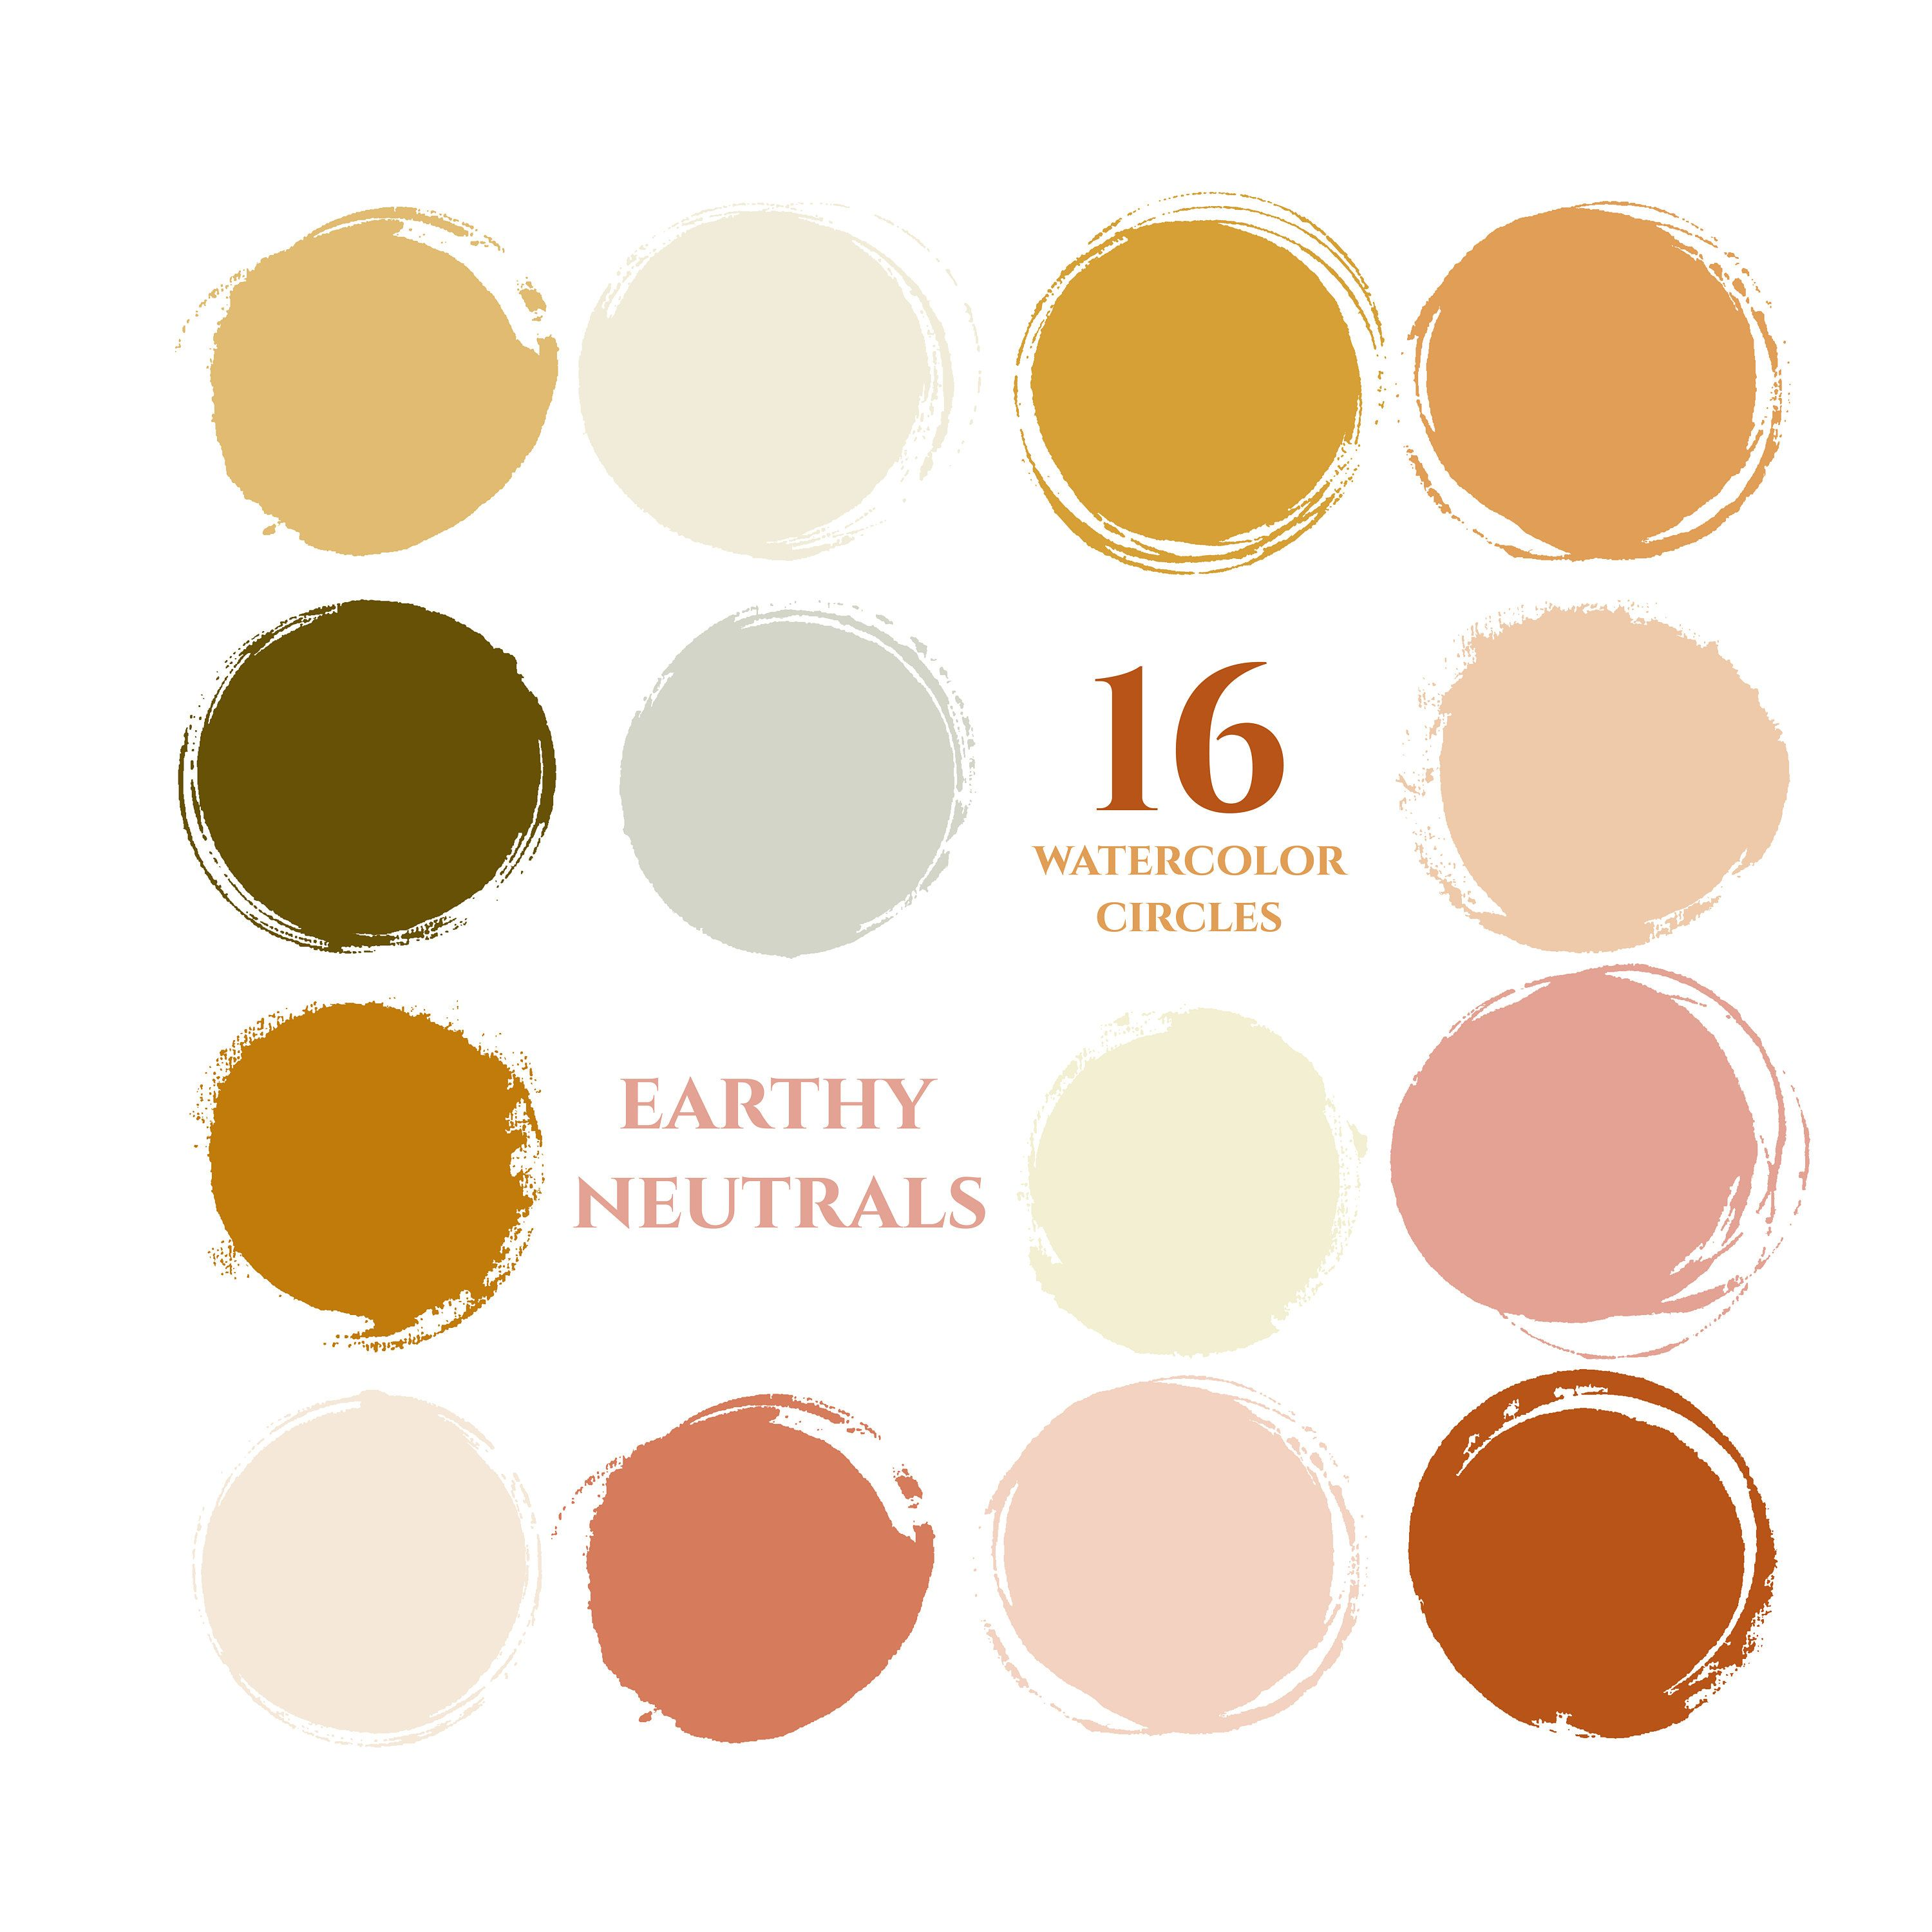 Autumn fall colors instagram story highlight icons earthy neutrals watercolor circles clipart gold copper mustard yellow blog branding kit #fallcolors